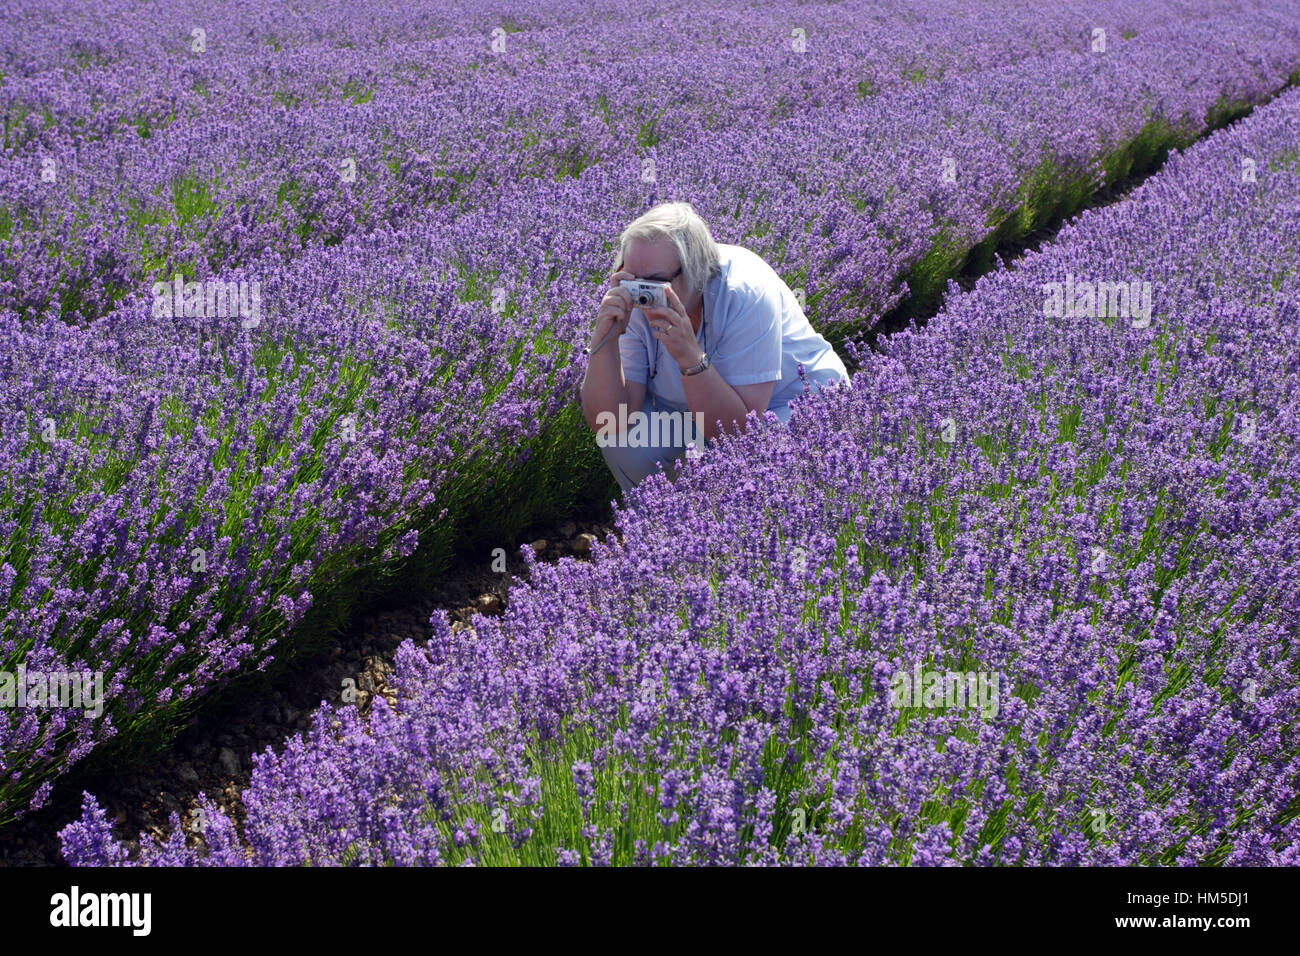 A woman photographs lavender fields at Snowshill, near Broadway, in the English Cotswolds. Stock Photo